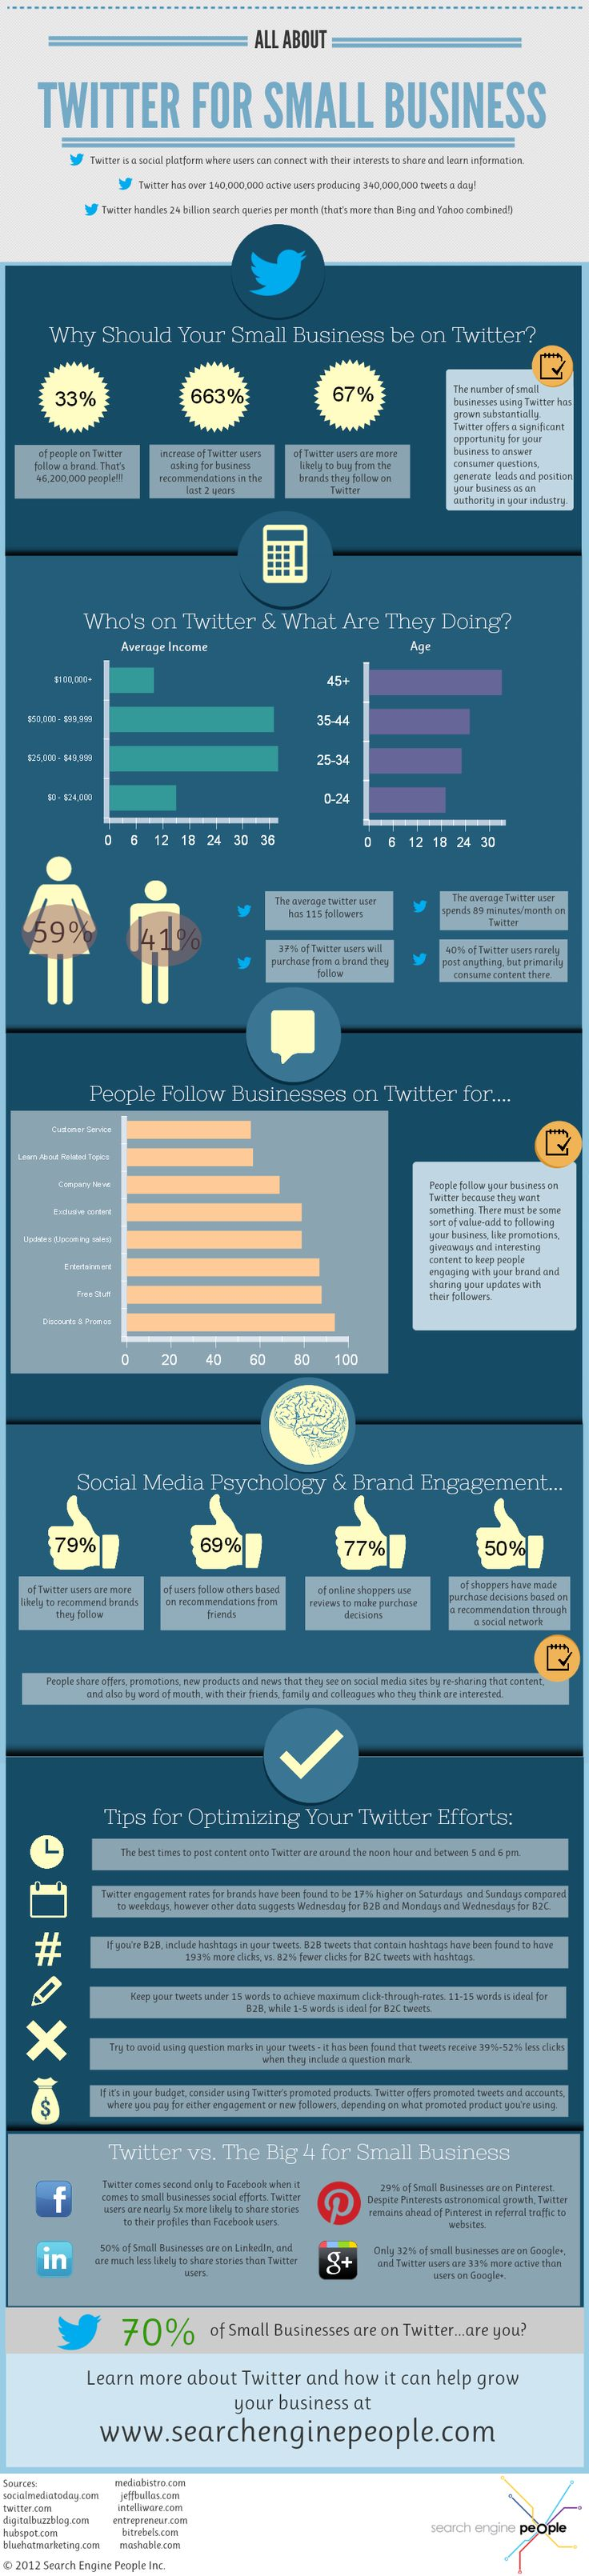 All about Twitter for small business #infographic